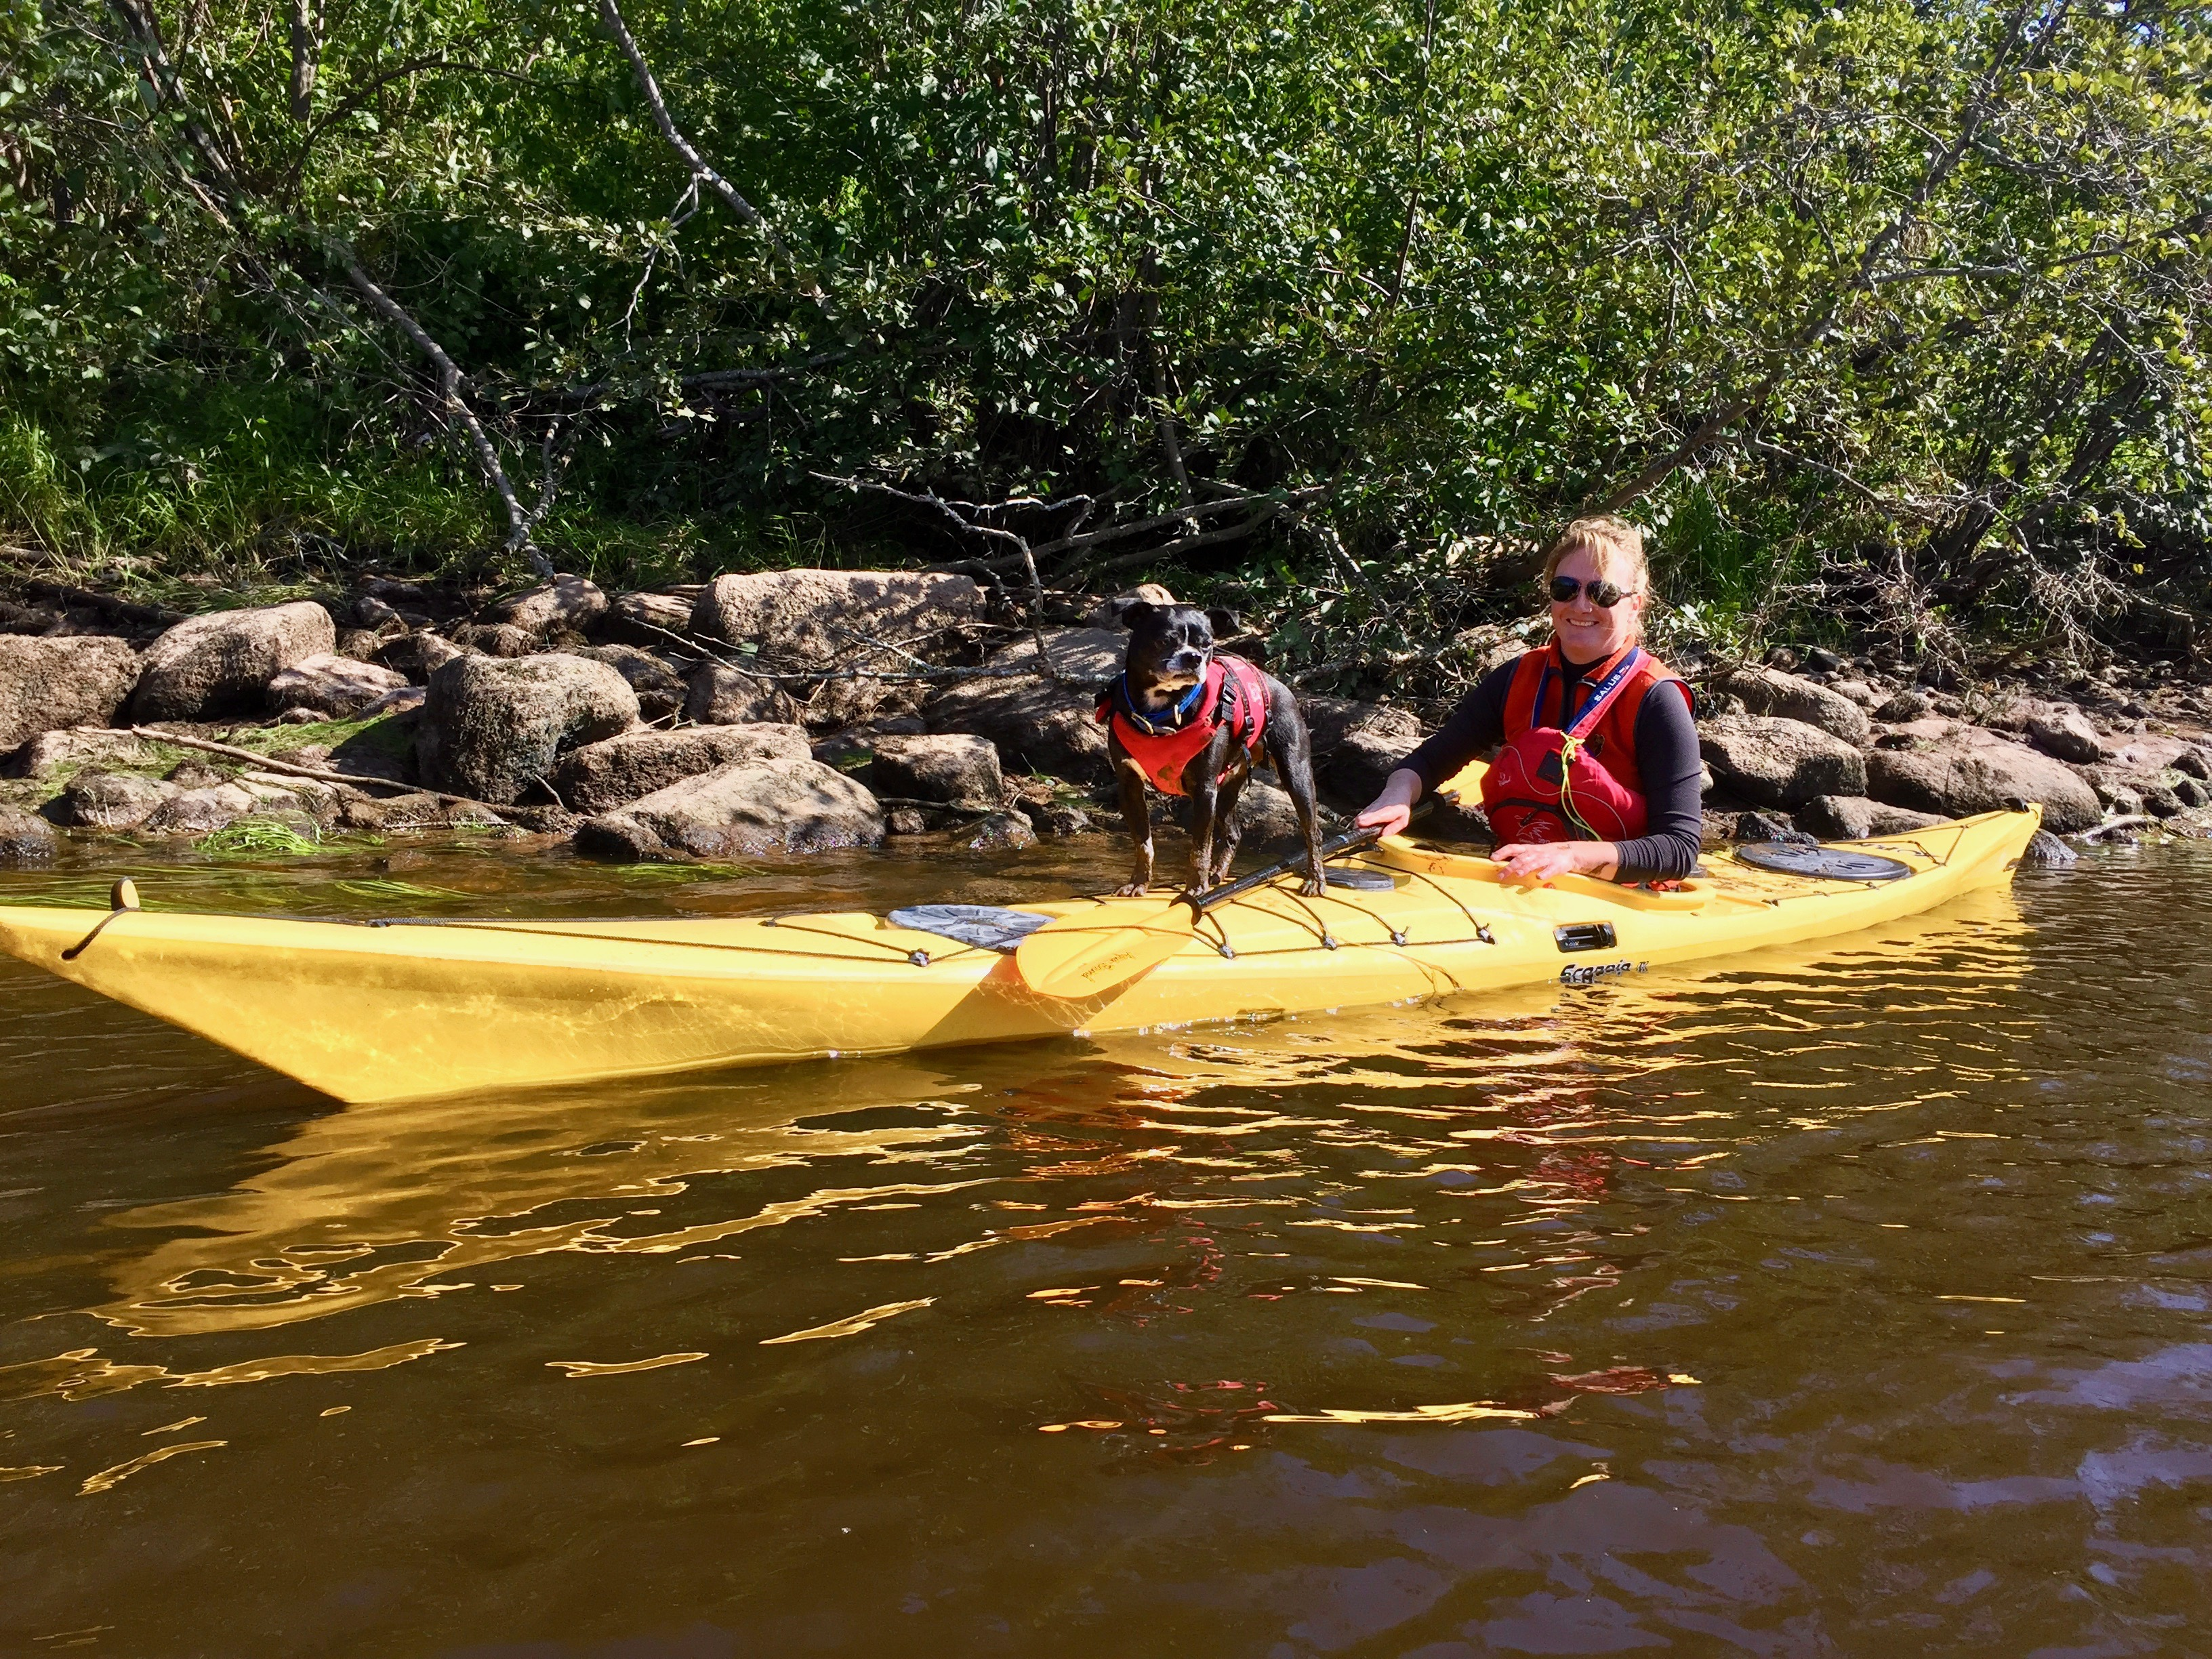 Windsor, Nova Scotia - Kayaking on the Avon River - Liz and Stanfield!